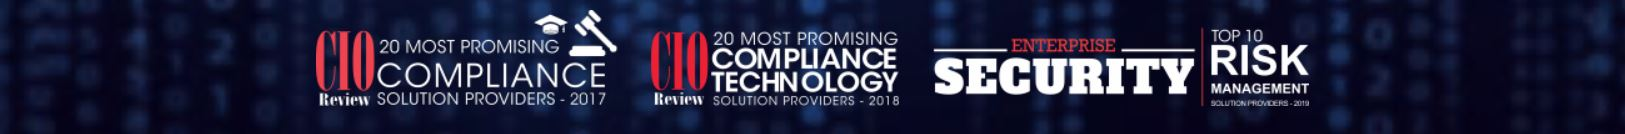 complianceforge-awards.jpg